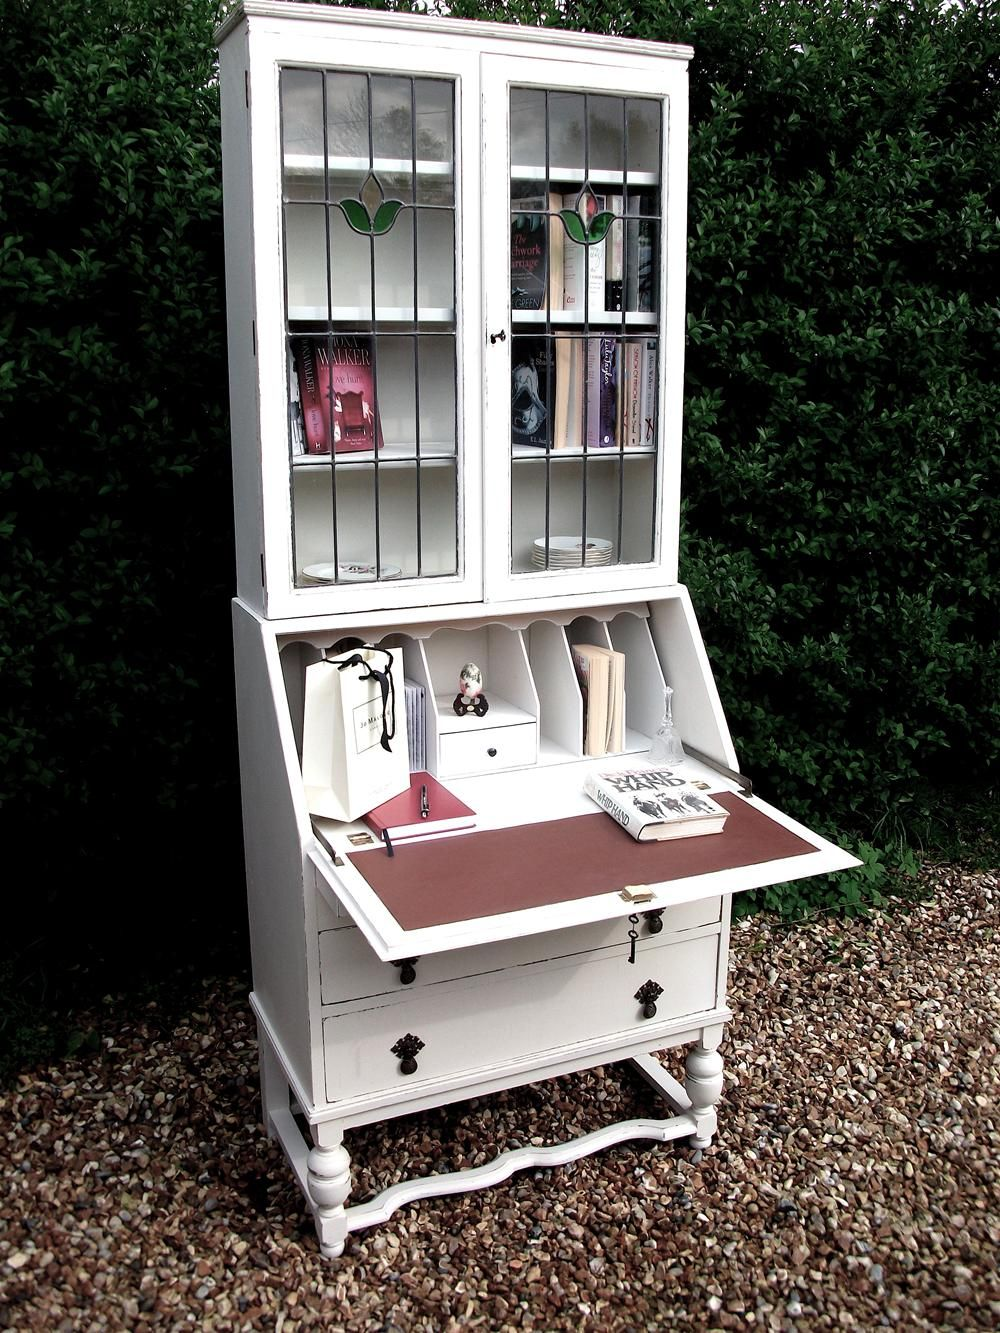 Effigy of Shabby Chic Bookshelf: How to Share Vintage Appeal